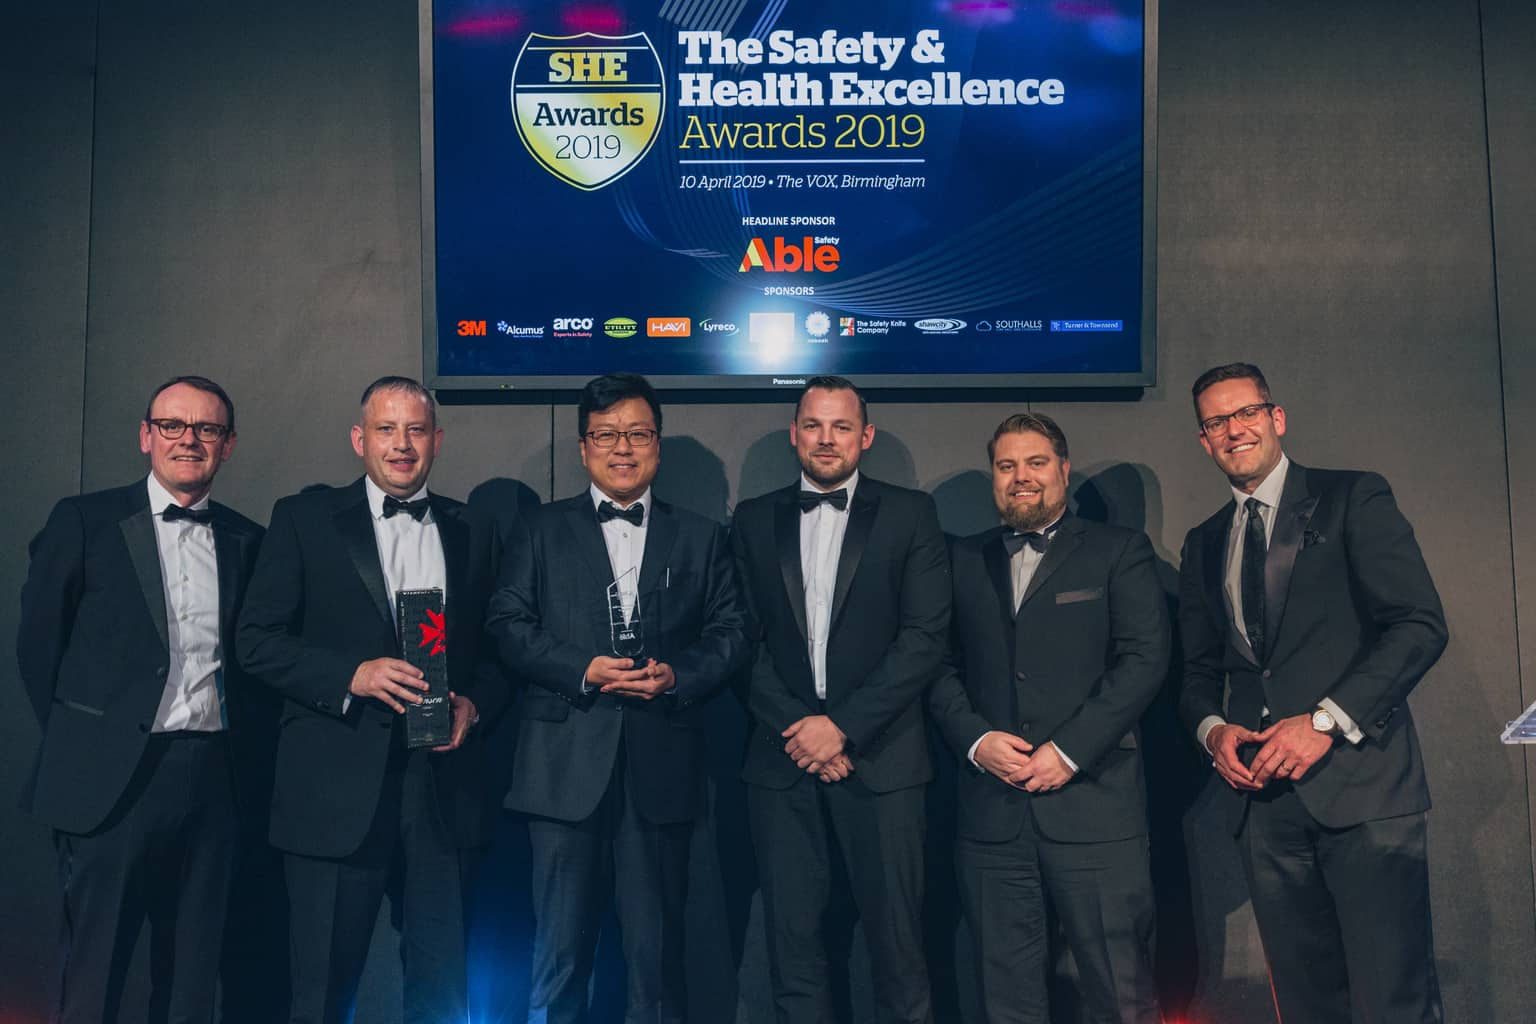 Safety & Health Excellence Awards